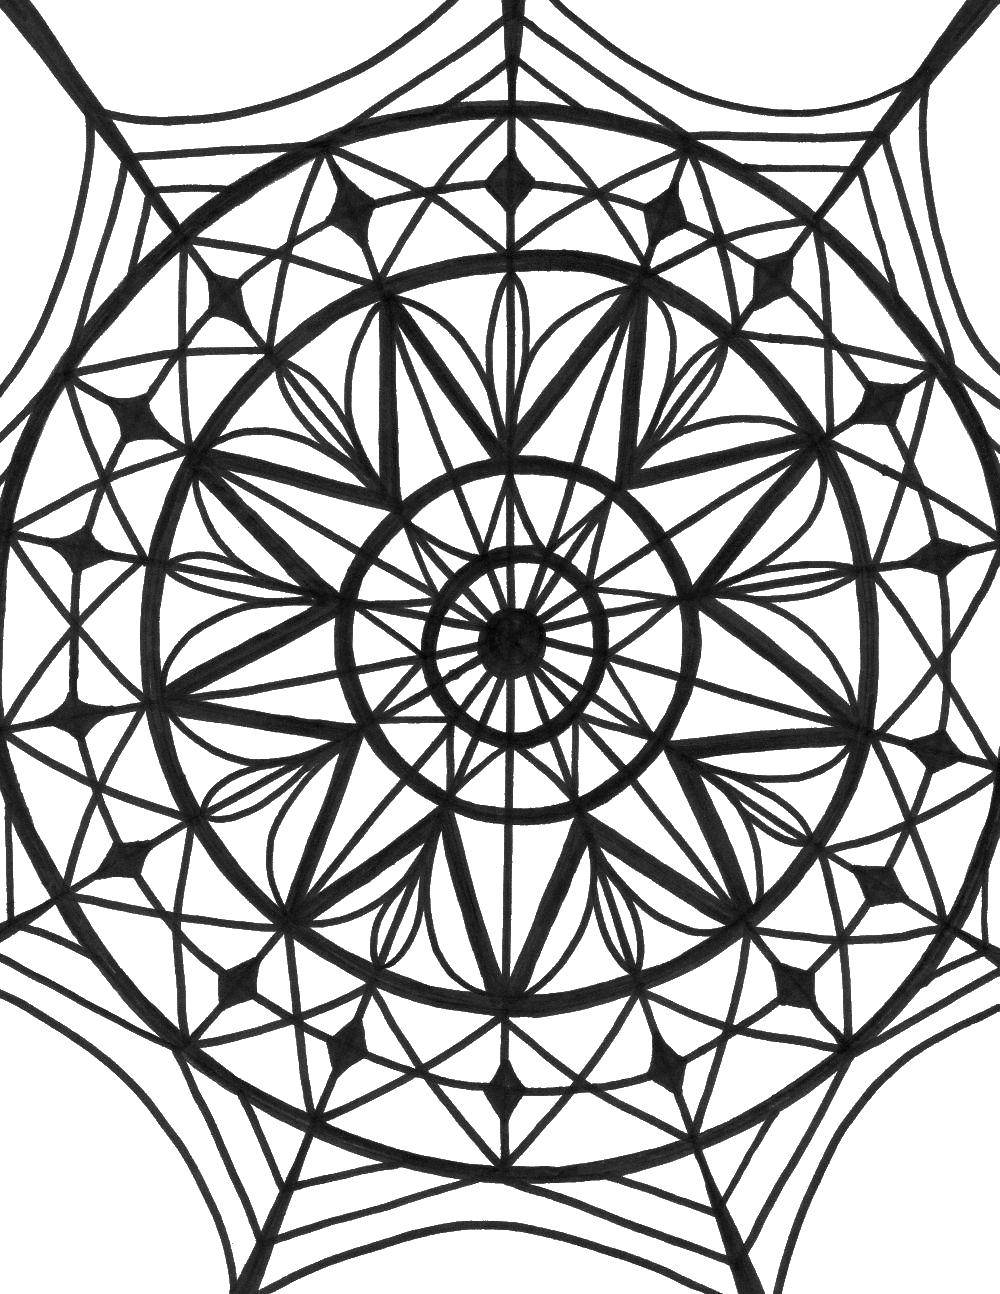 Geometric Coloring Pages, Mandala Coloring Pages, Doodle ... | 1294x1000